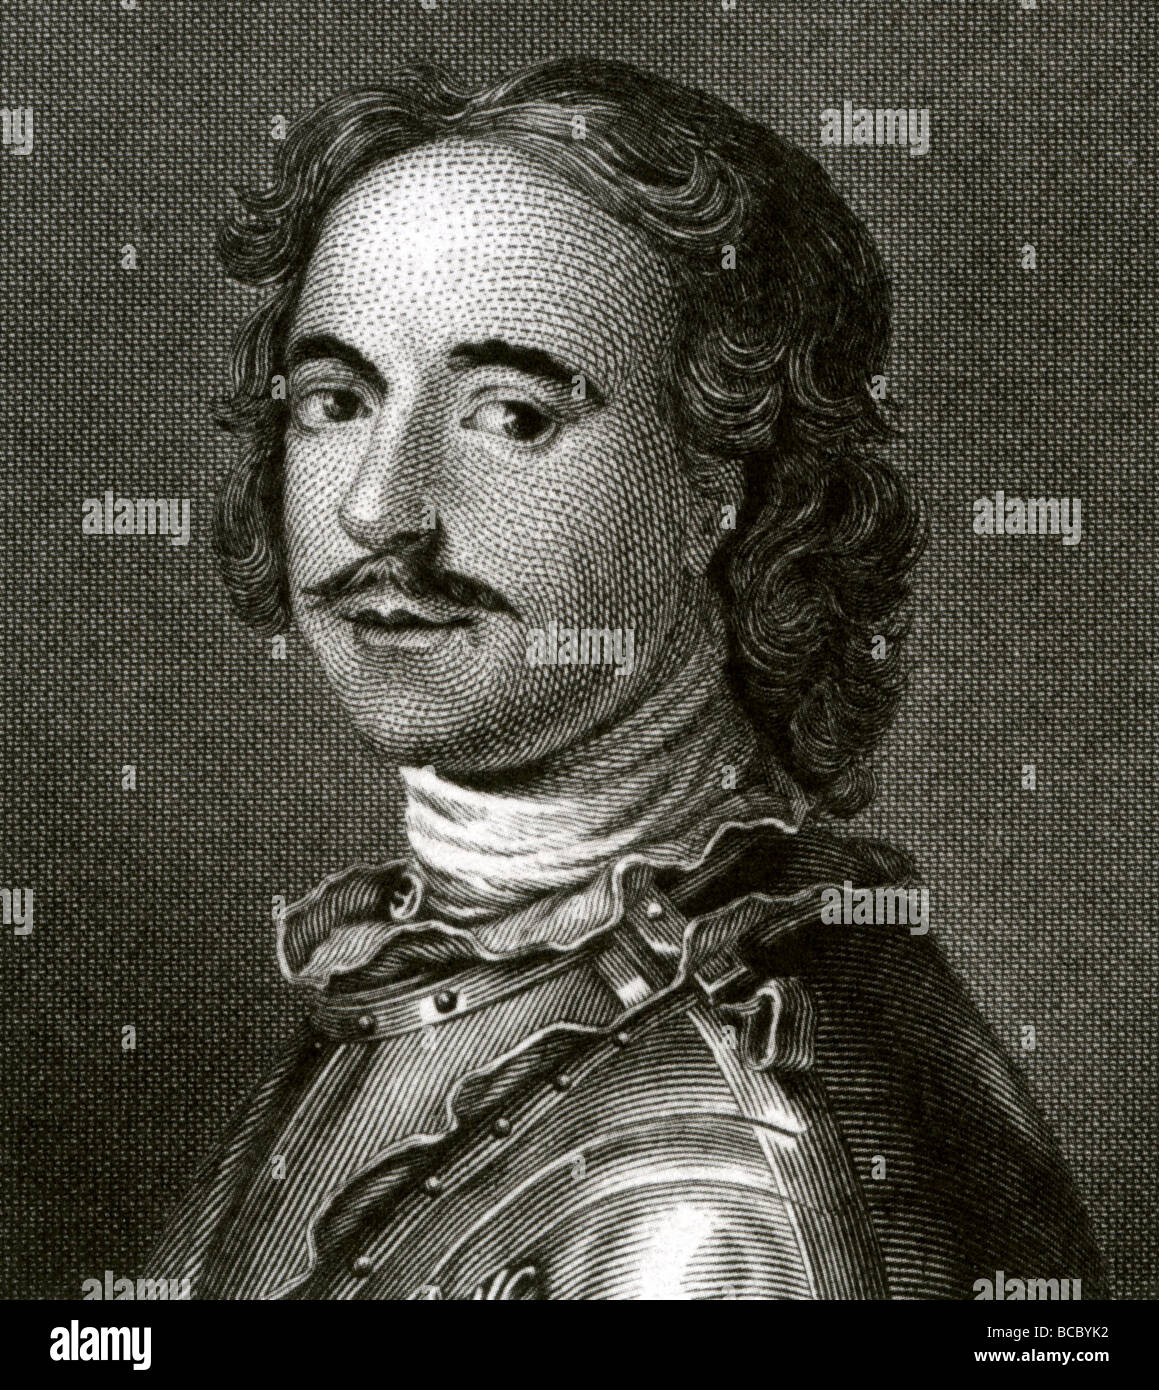 PETER THE GREAT - Tsar and Emperor of Russia - Stock Image